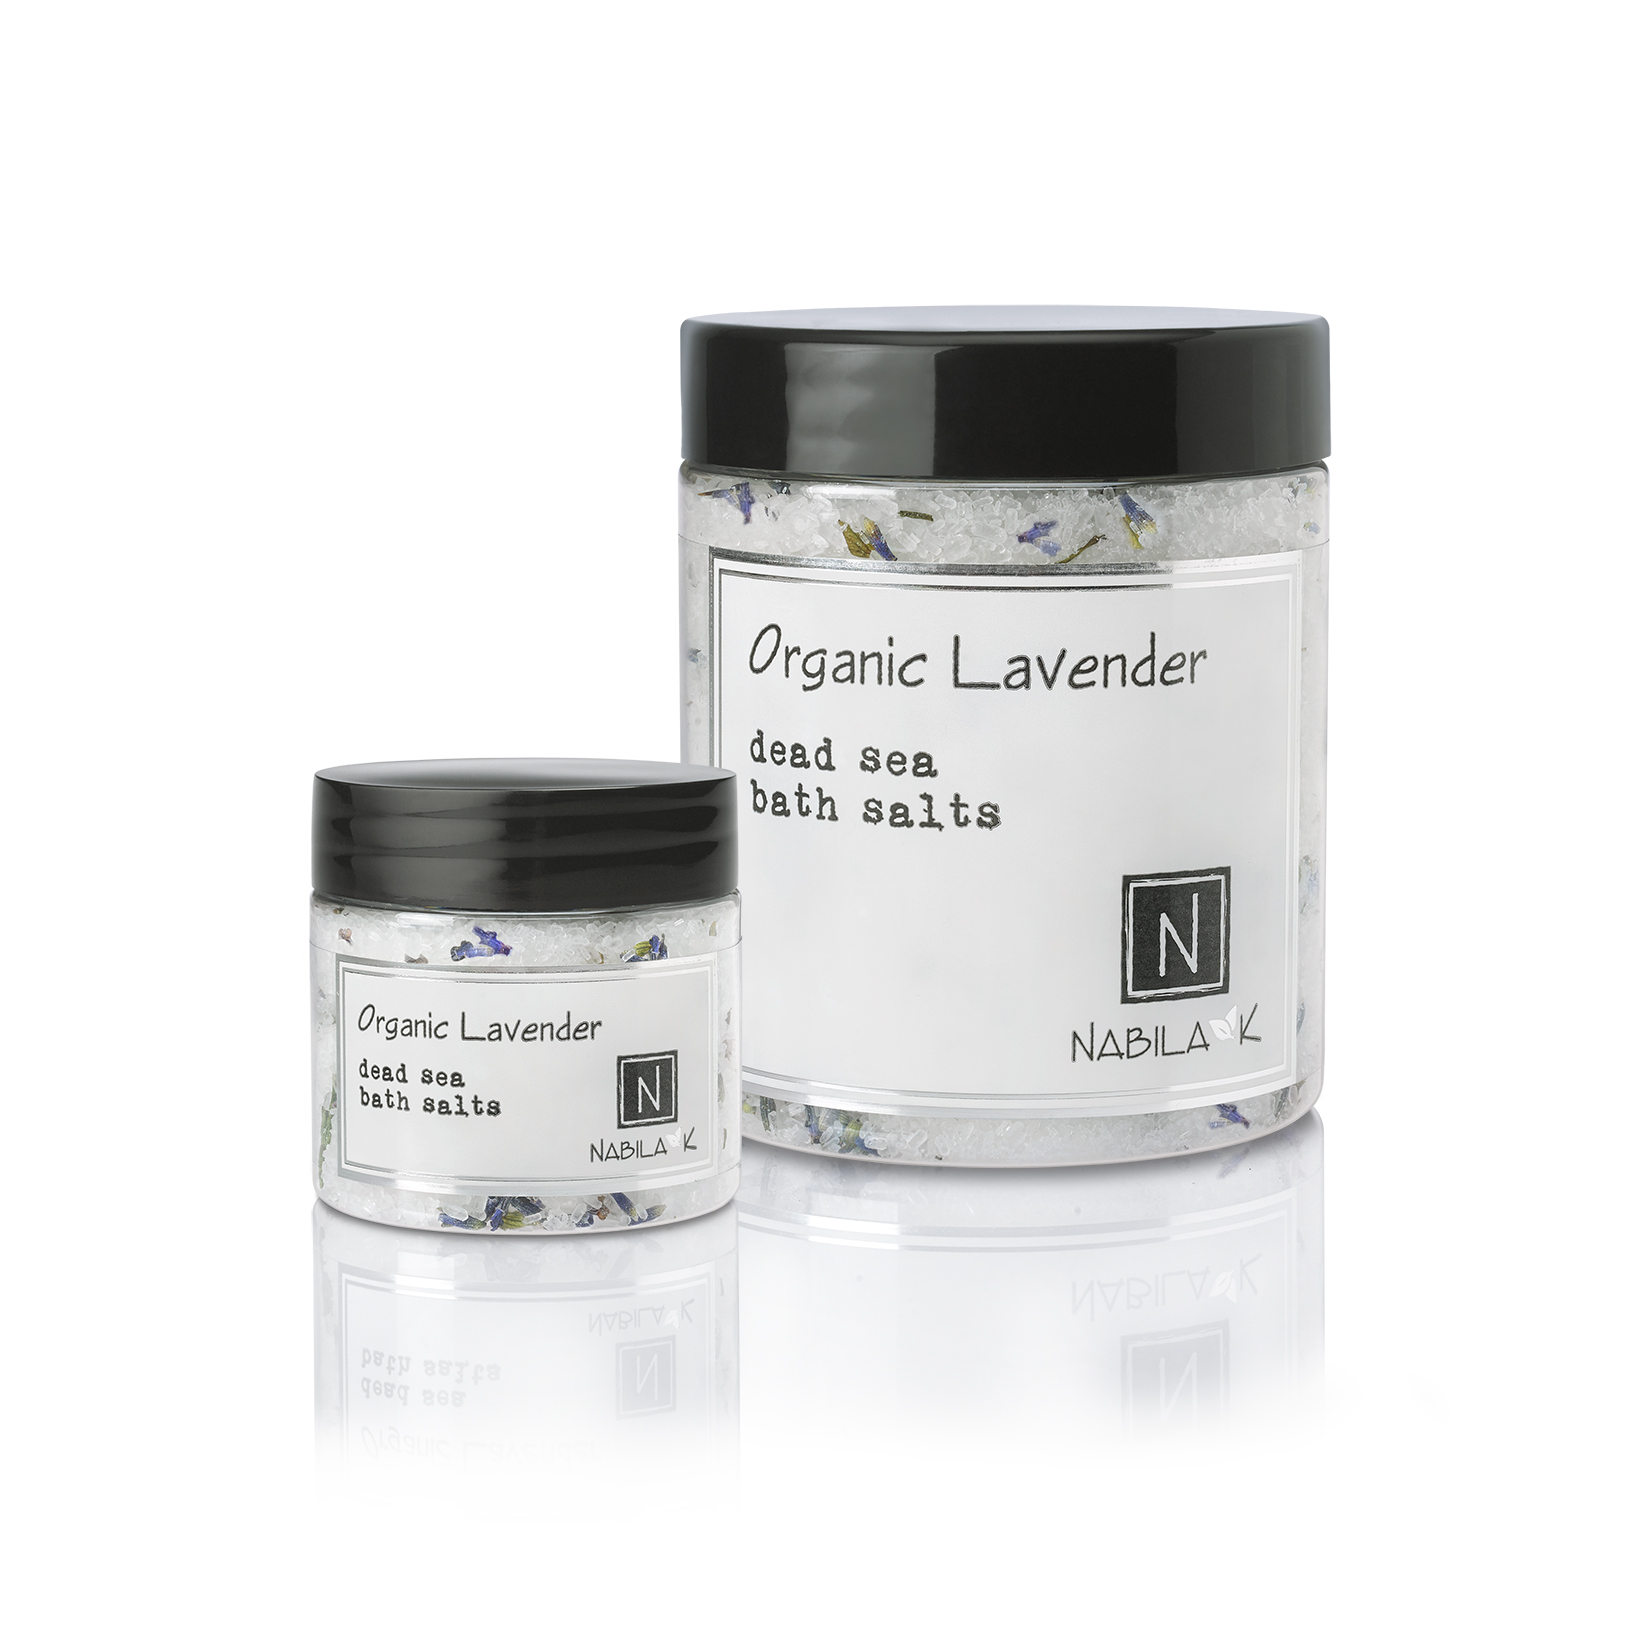 Lavender bath salts made with all natural ingredients.